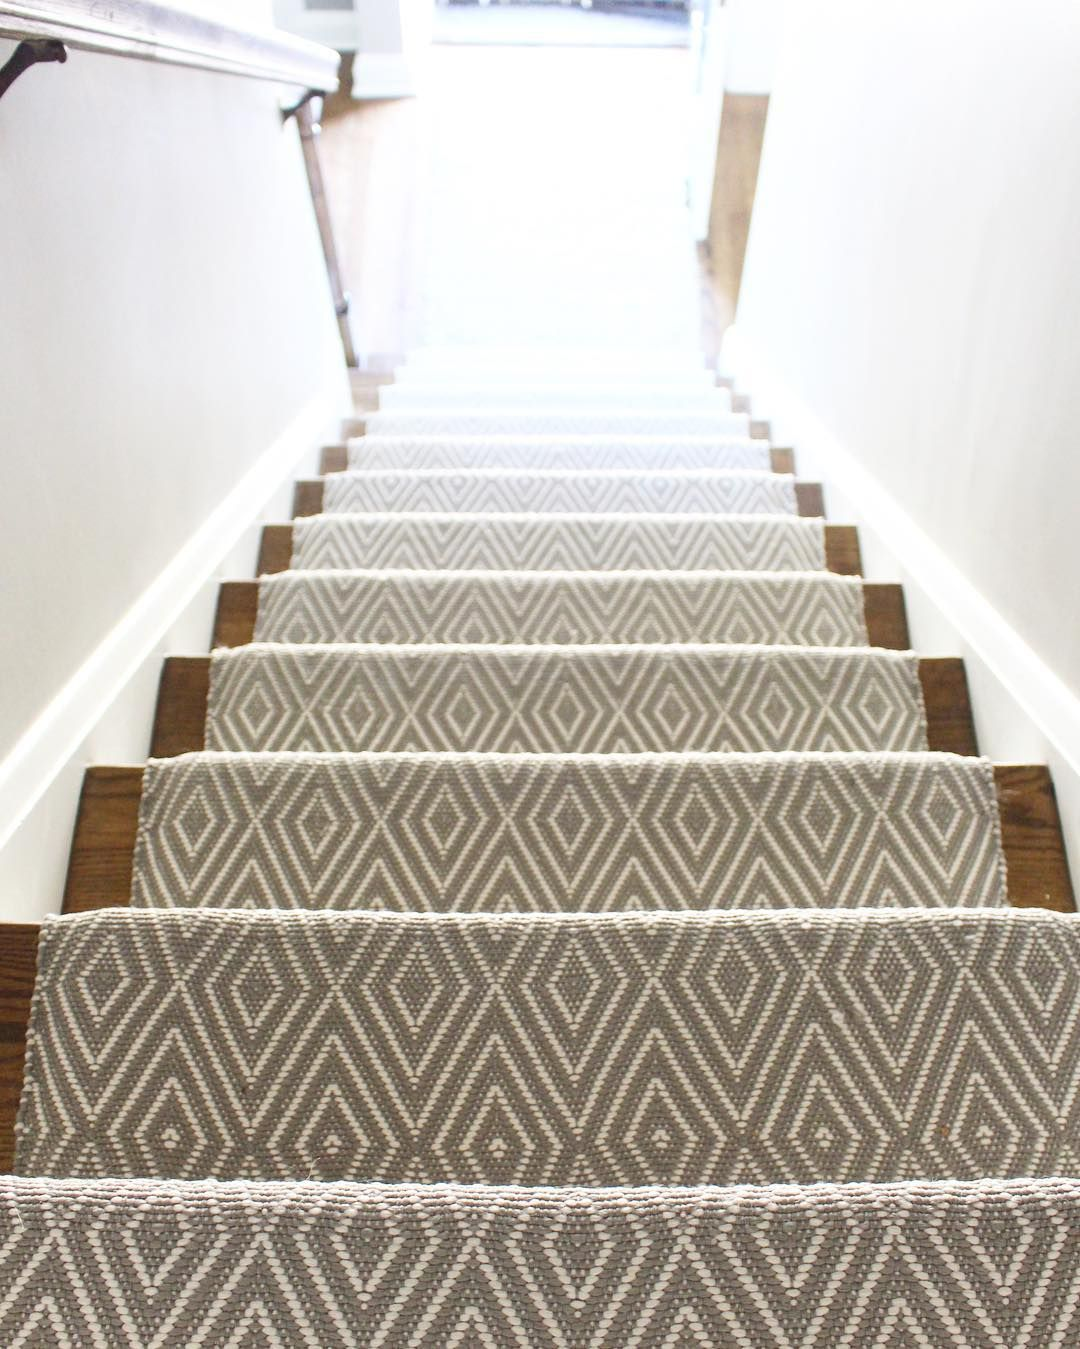 Wide Stair Runner W Pattern Carpet Stairs Stair Runner Carpet | Stair Runners For Carpeted Stairs | Round Corner | Marble | Hardwood | Commercial | Tile Stair